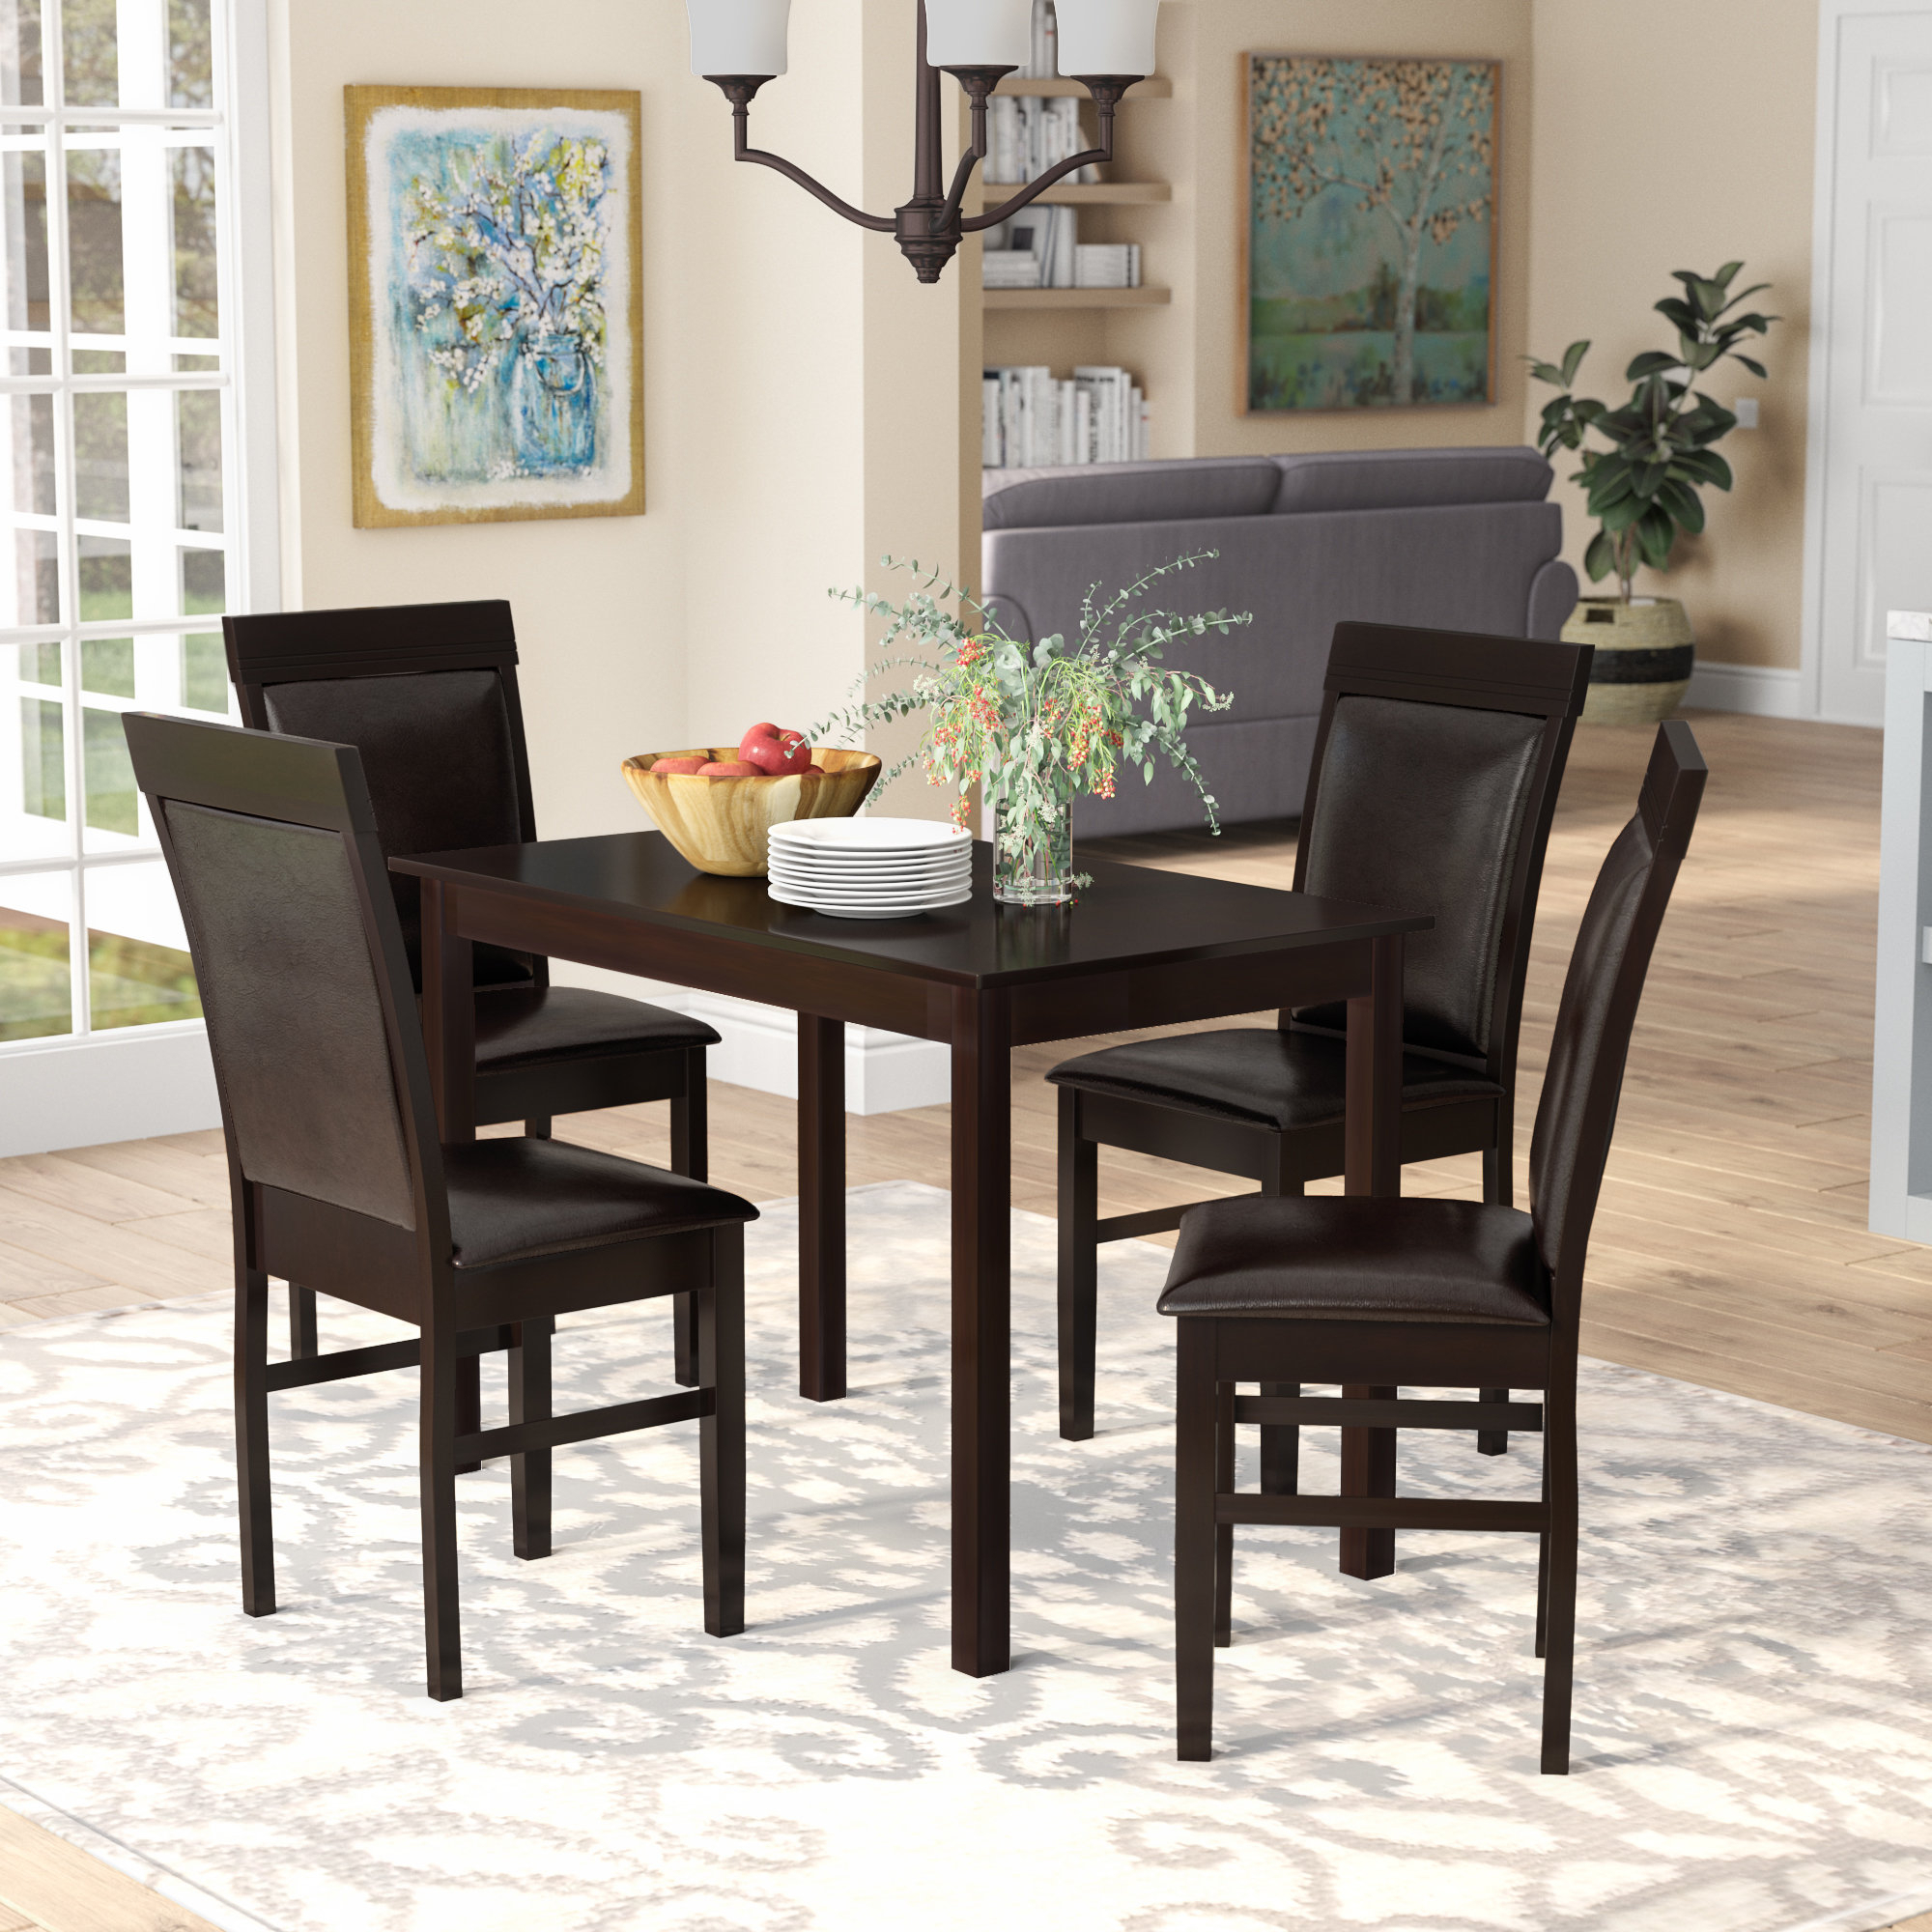 2017 5 Piece Breakfast Nook Dining Sets Throughout Kisor Modern And Contemporary 5 Piece Breakfast Nook Dining Set (View 1 of 20)